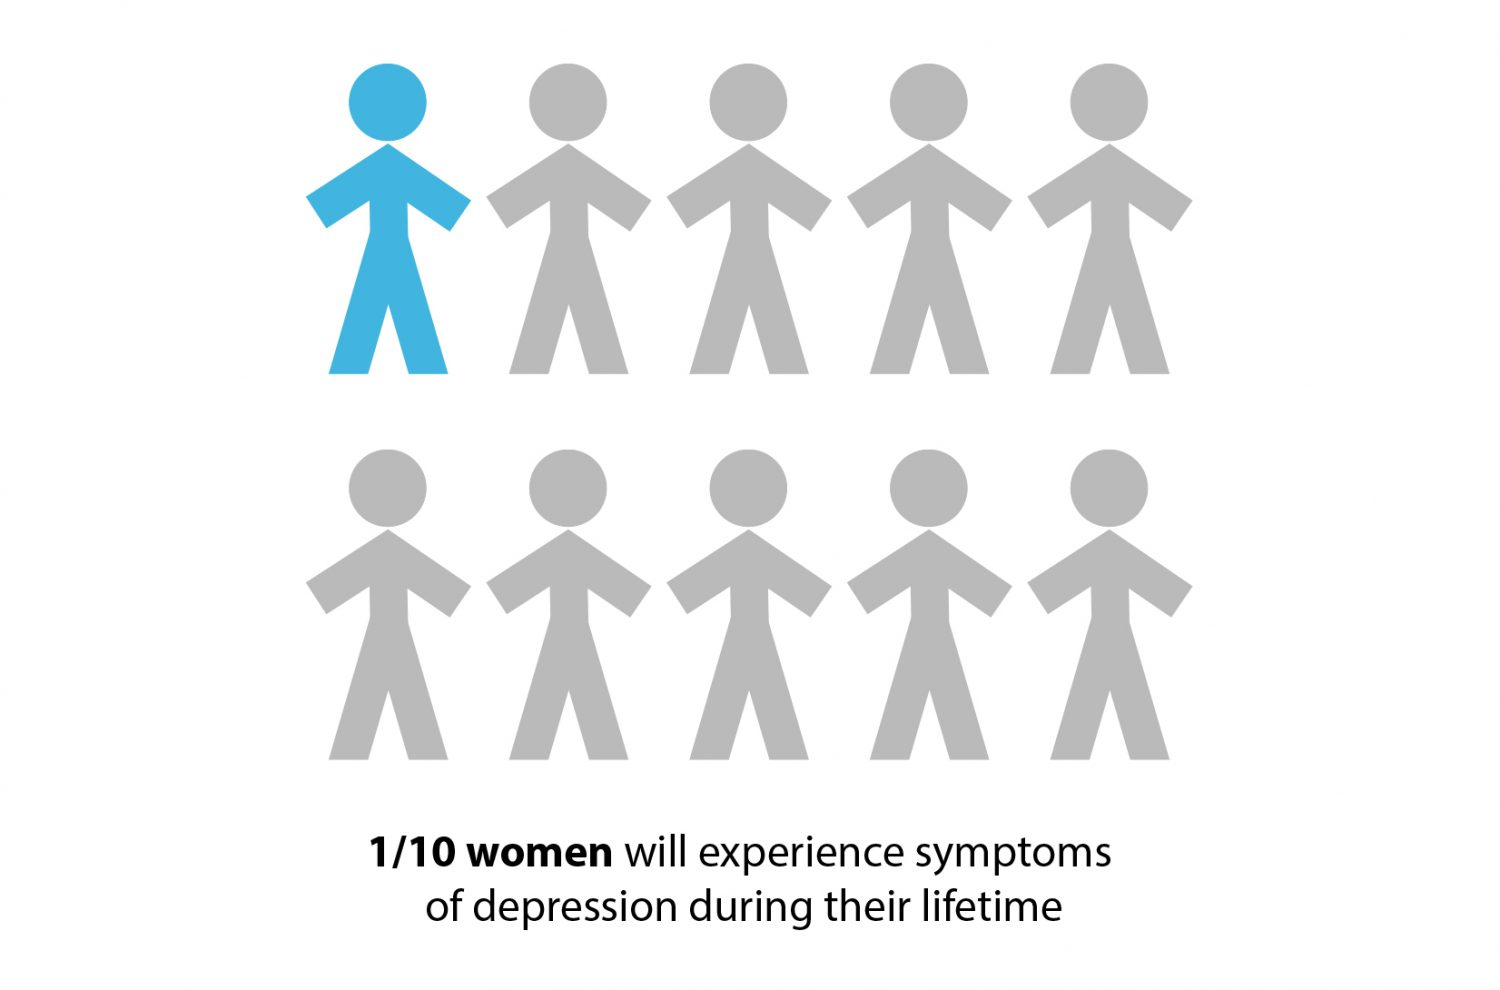 Why Are Women More Likely to Have Depression?